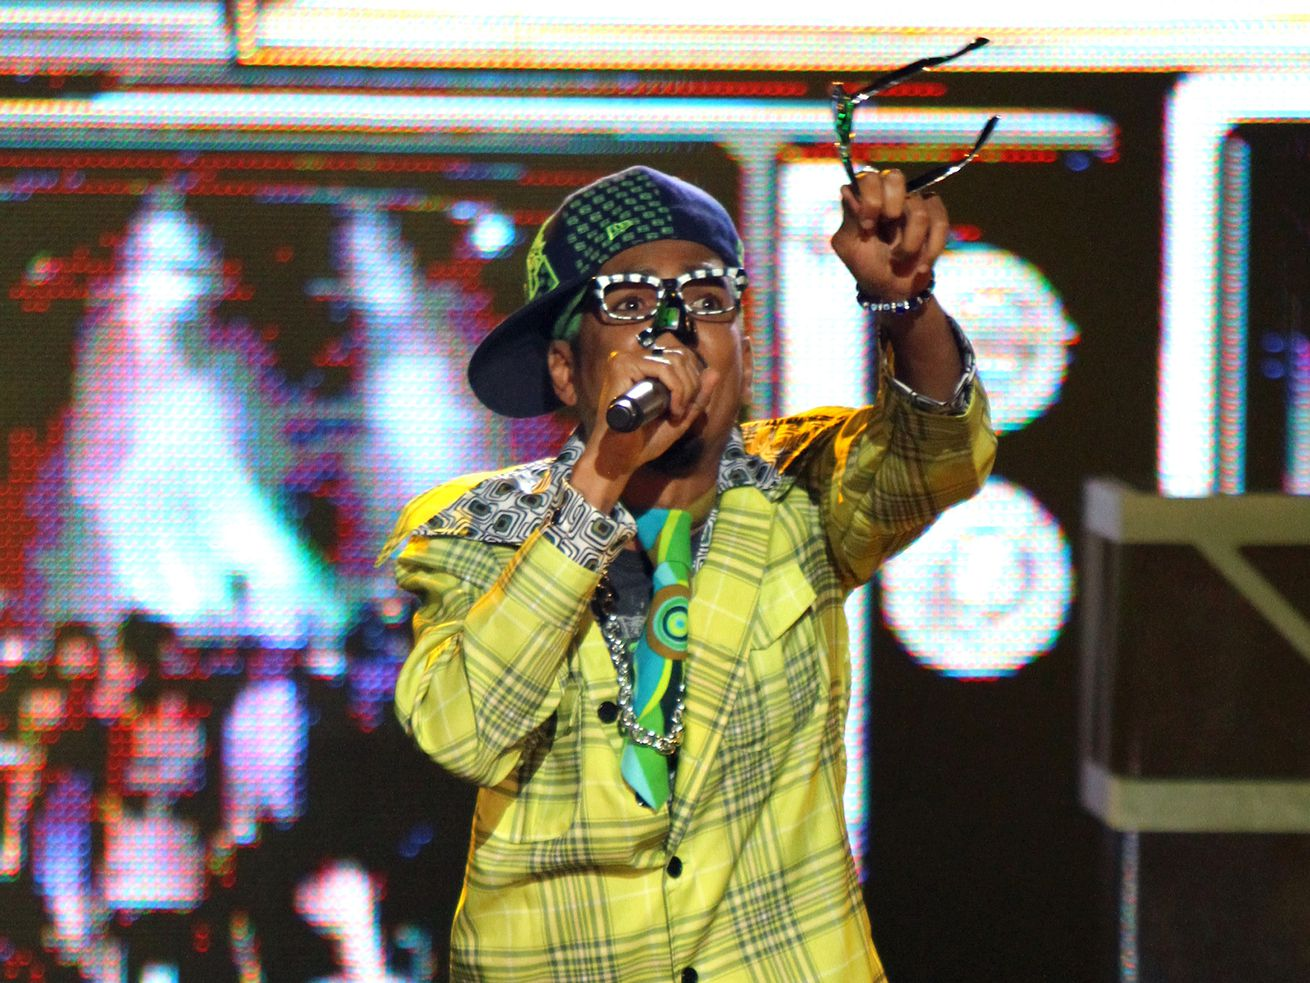 Shock G of Digital Underground performs during the BET Hip Hop Awards '10 in 2010 in Atlanta, Georgia.